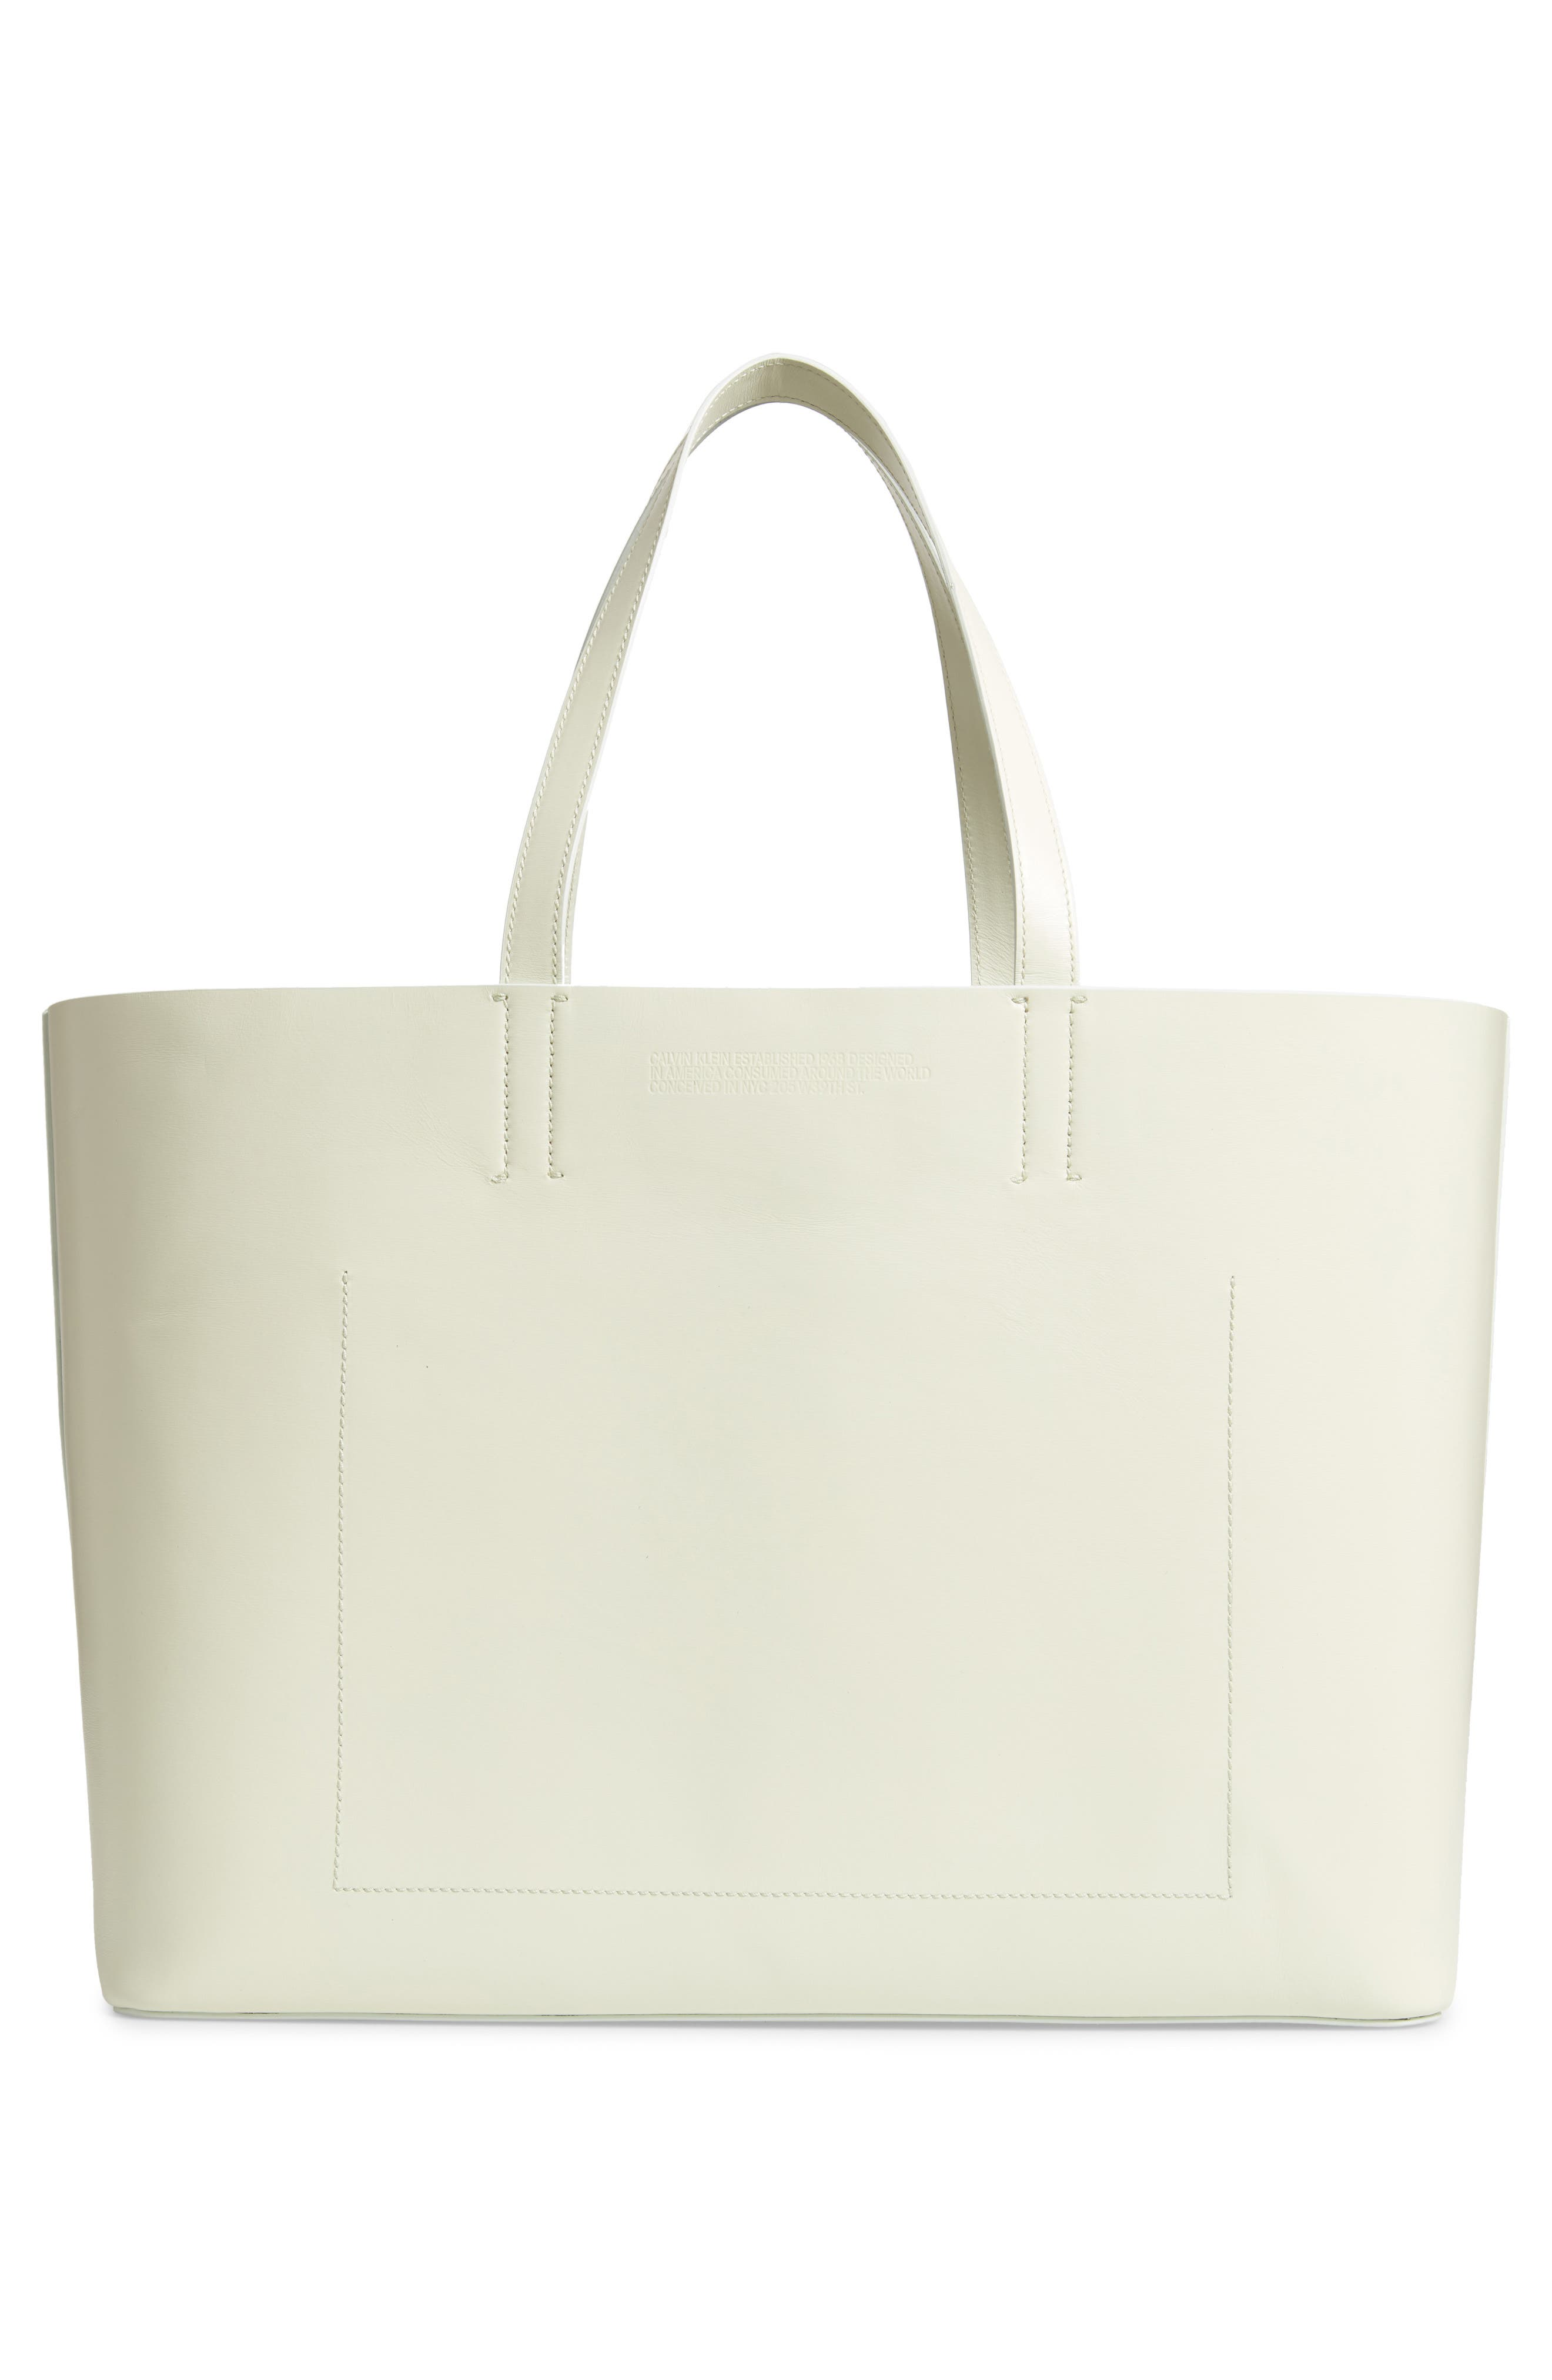 CALVIN KLEIN 205W39NYC,                             Road Runner East/West Leather Tote,                             Alternate thumbnail 3, color,                             053